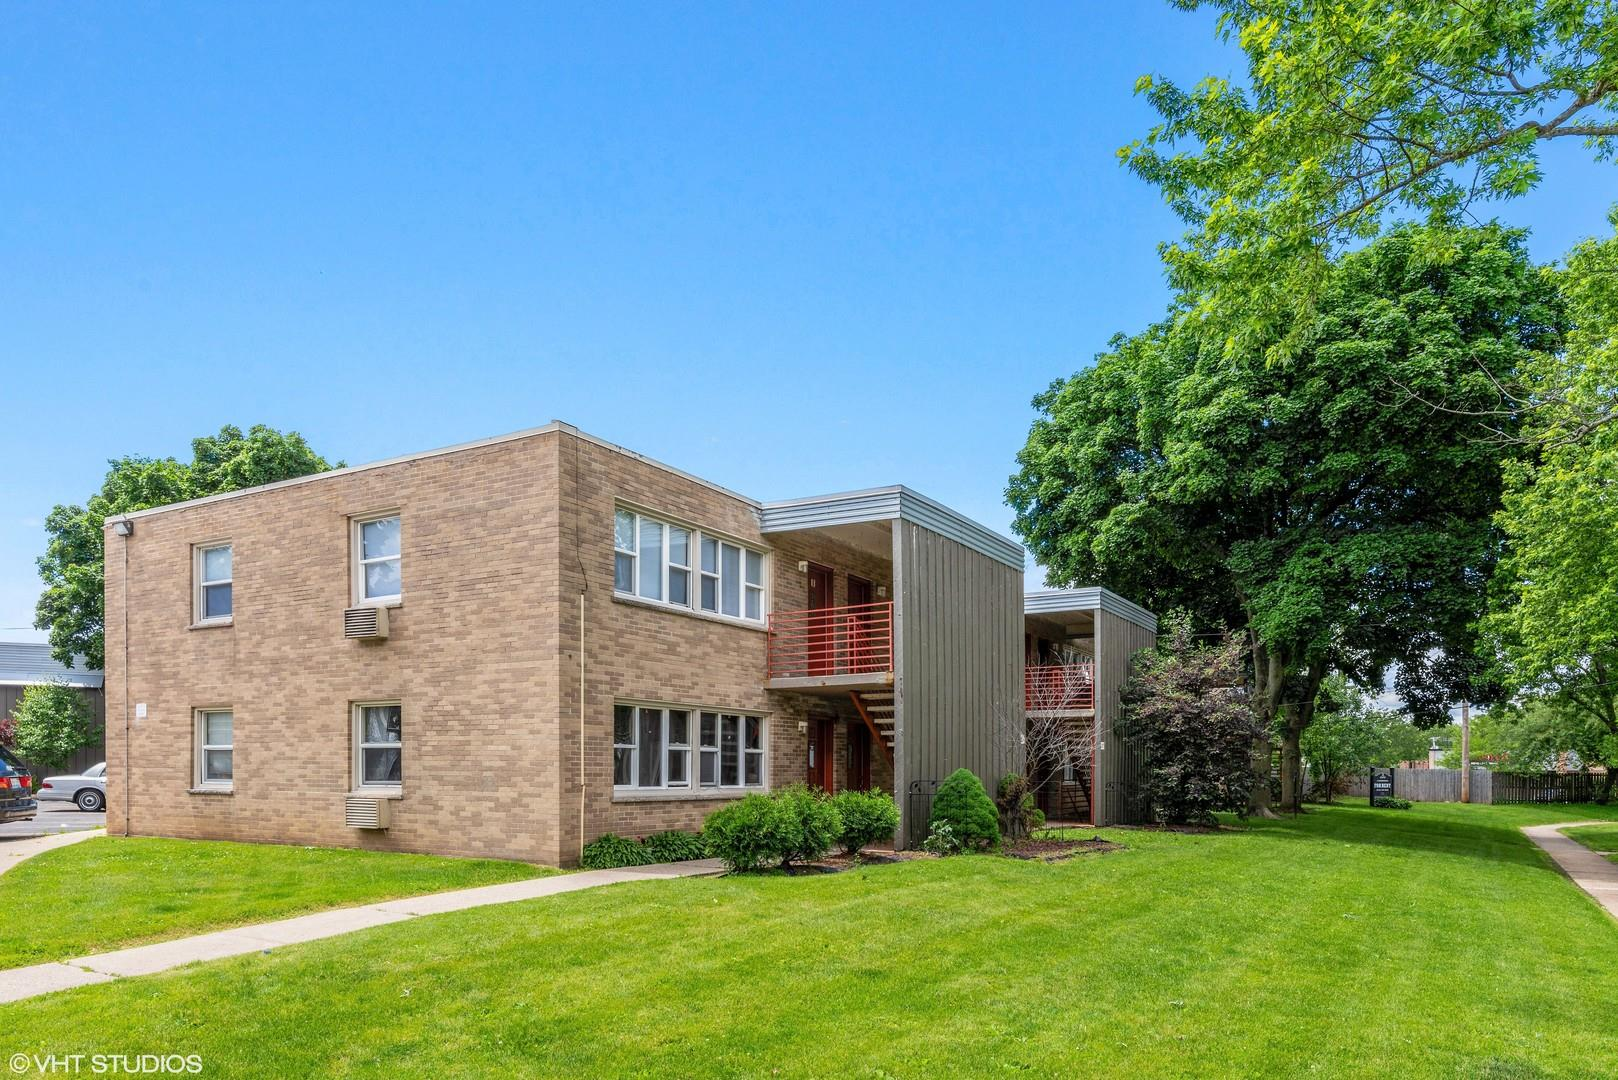 243 UTEG Street #8, Crystal Lake, IL 60014 - #: 10683370